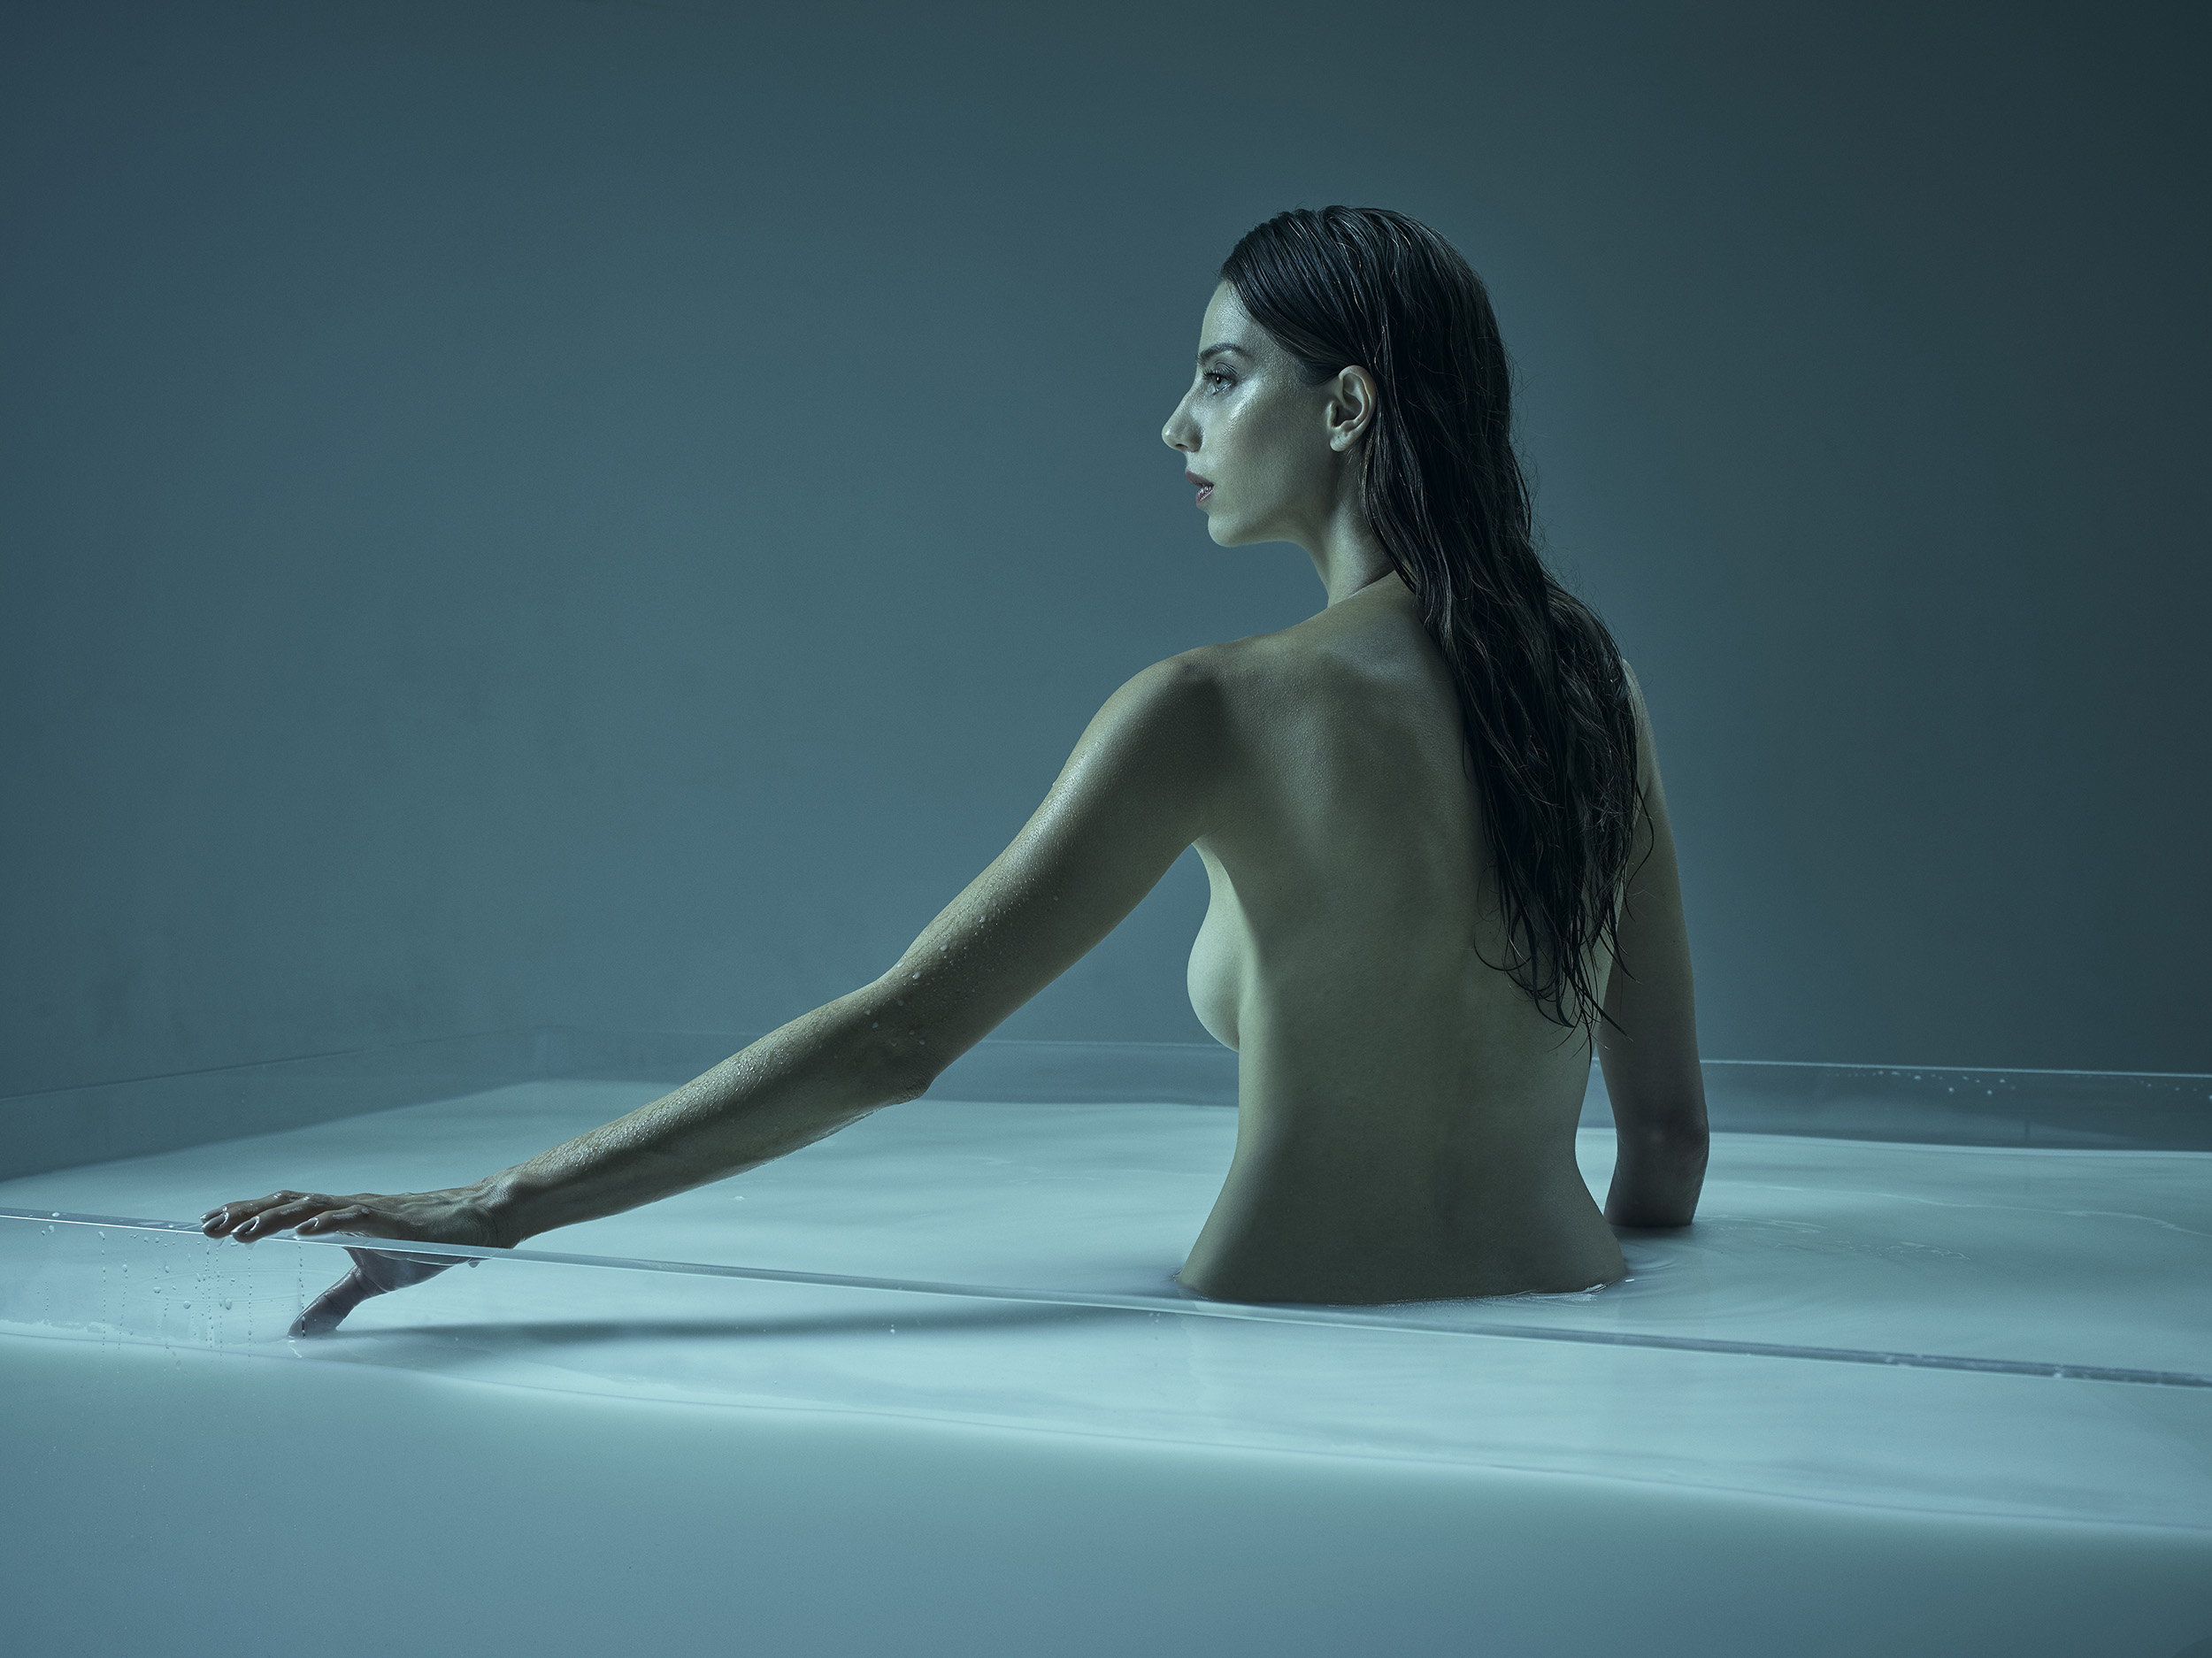 Angela_Sarafyan_by_Robert_Ascroft-MILK-011